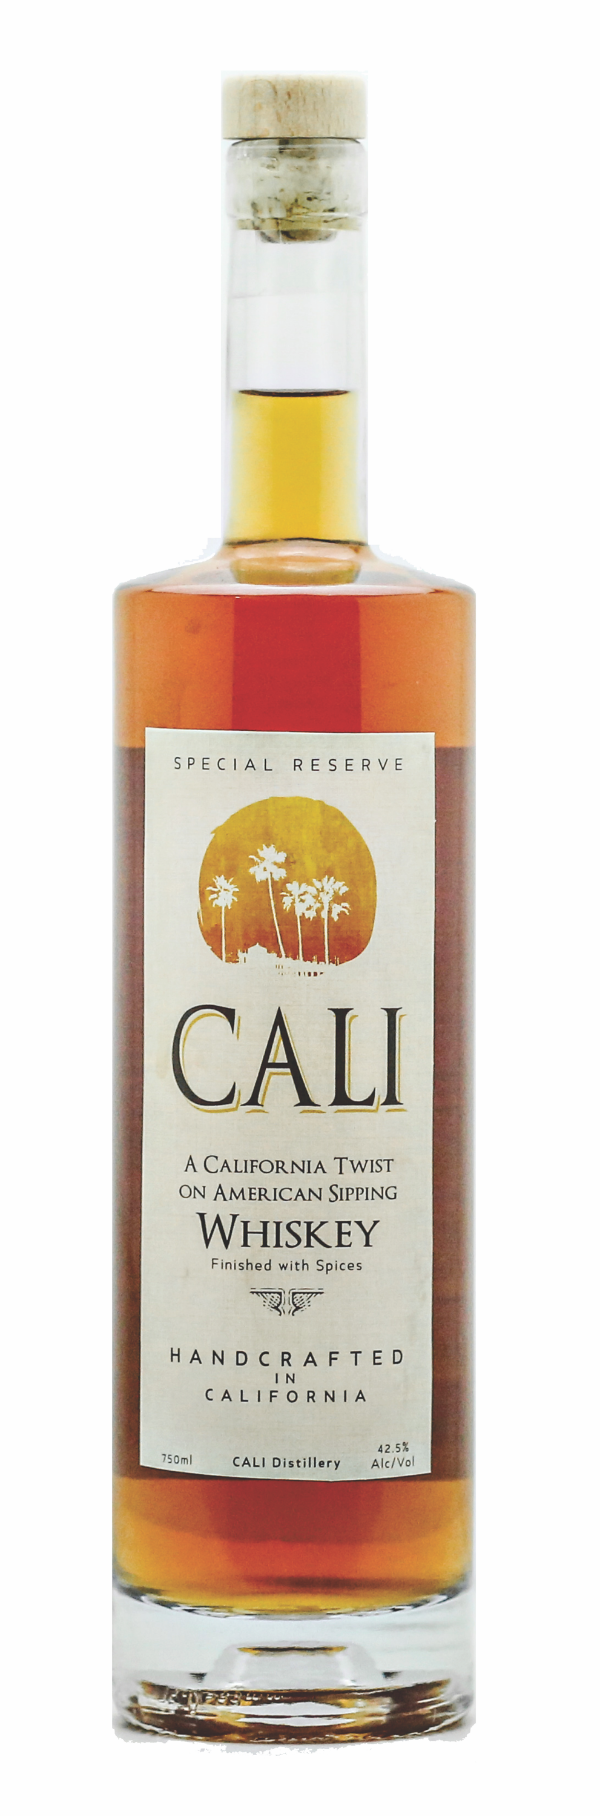 CALI California Sipping Whiskey